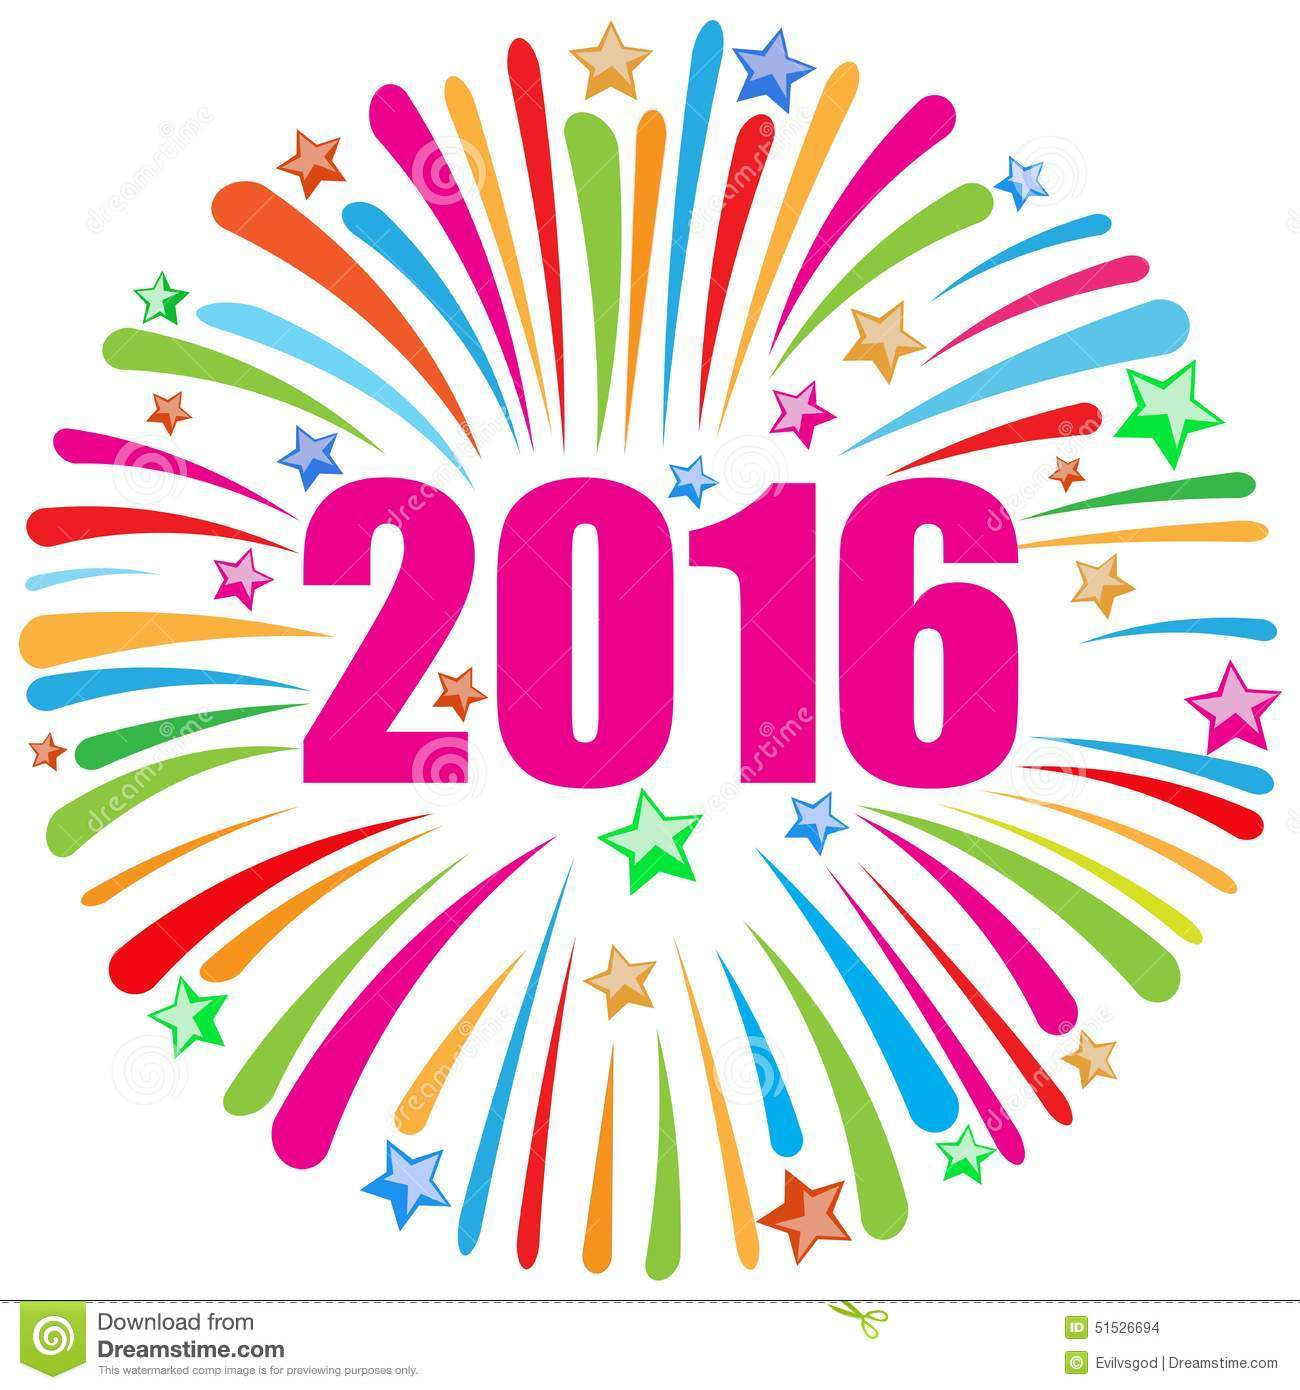 Happy New Year 2016 White Stock Vector - Image: 51526694: www.dreamstime.com/stock-illustration-happy-new-year-white...